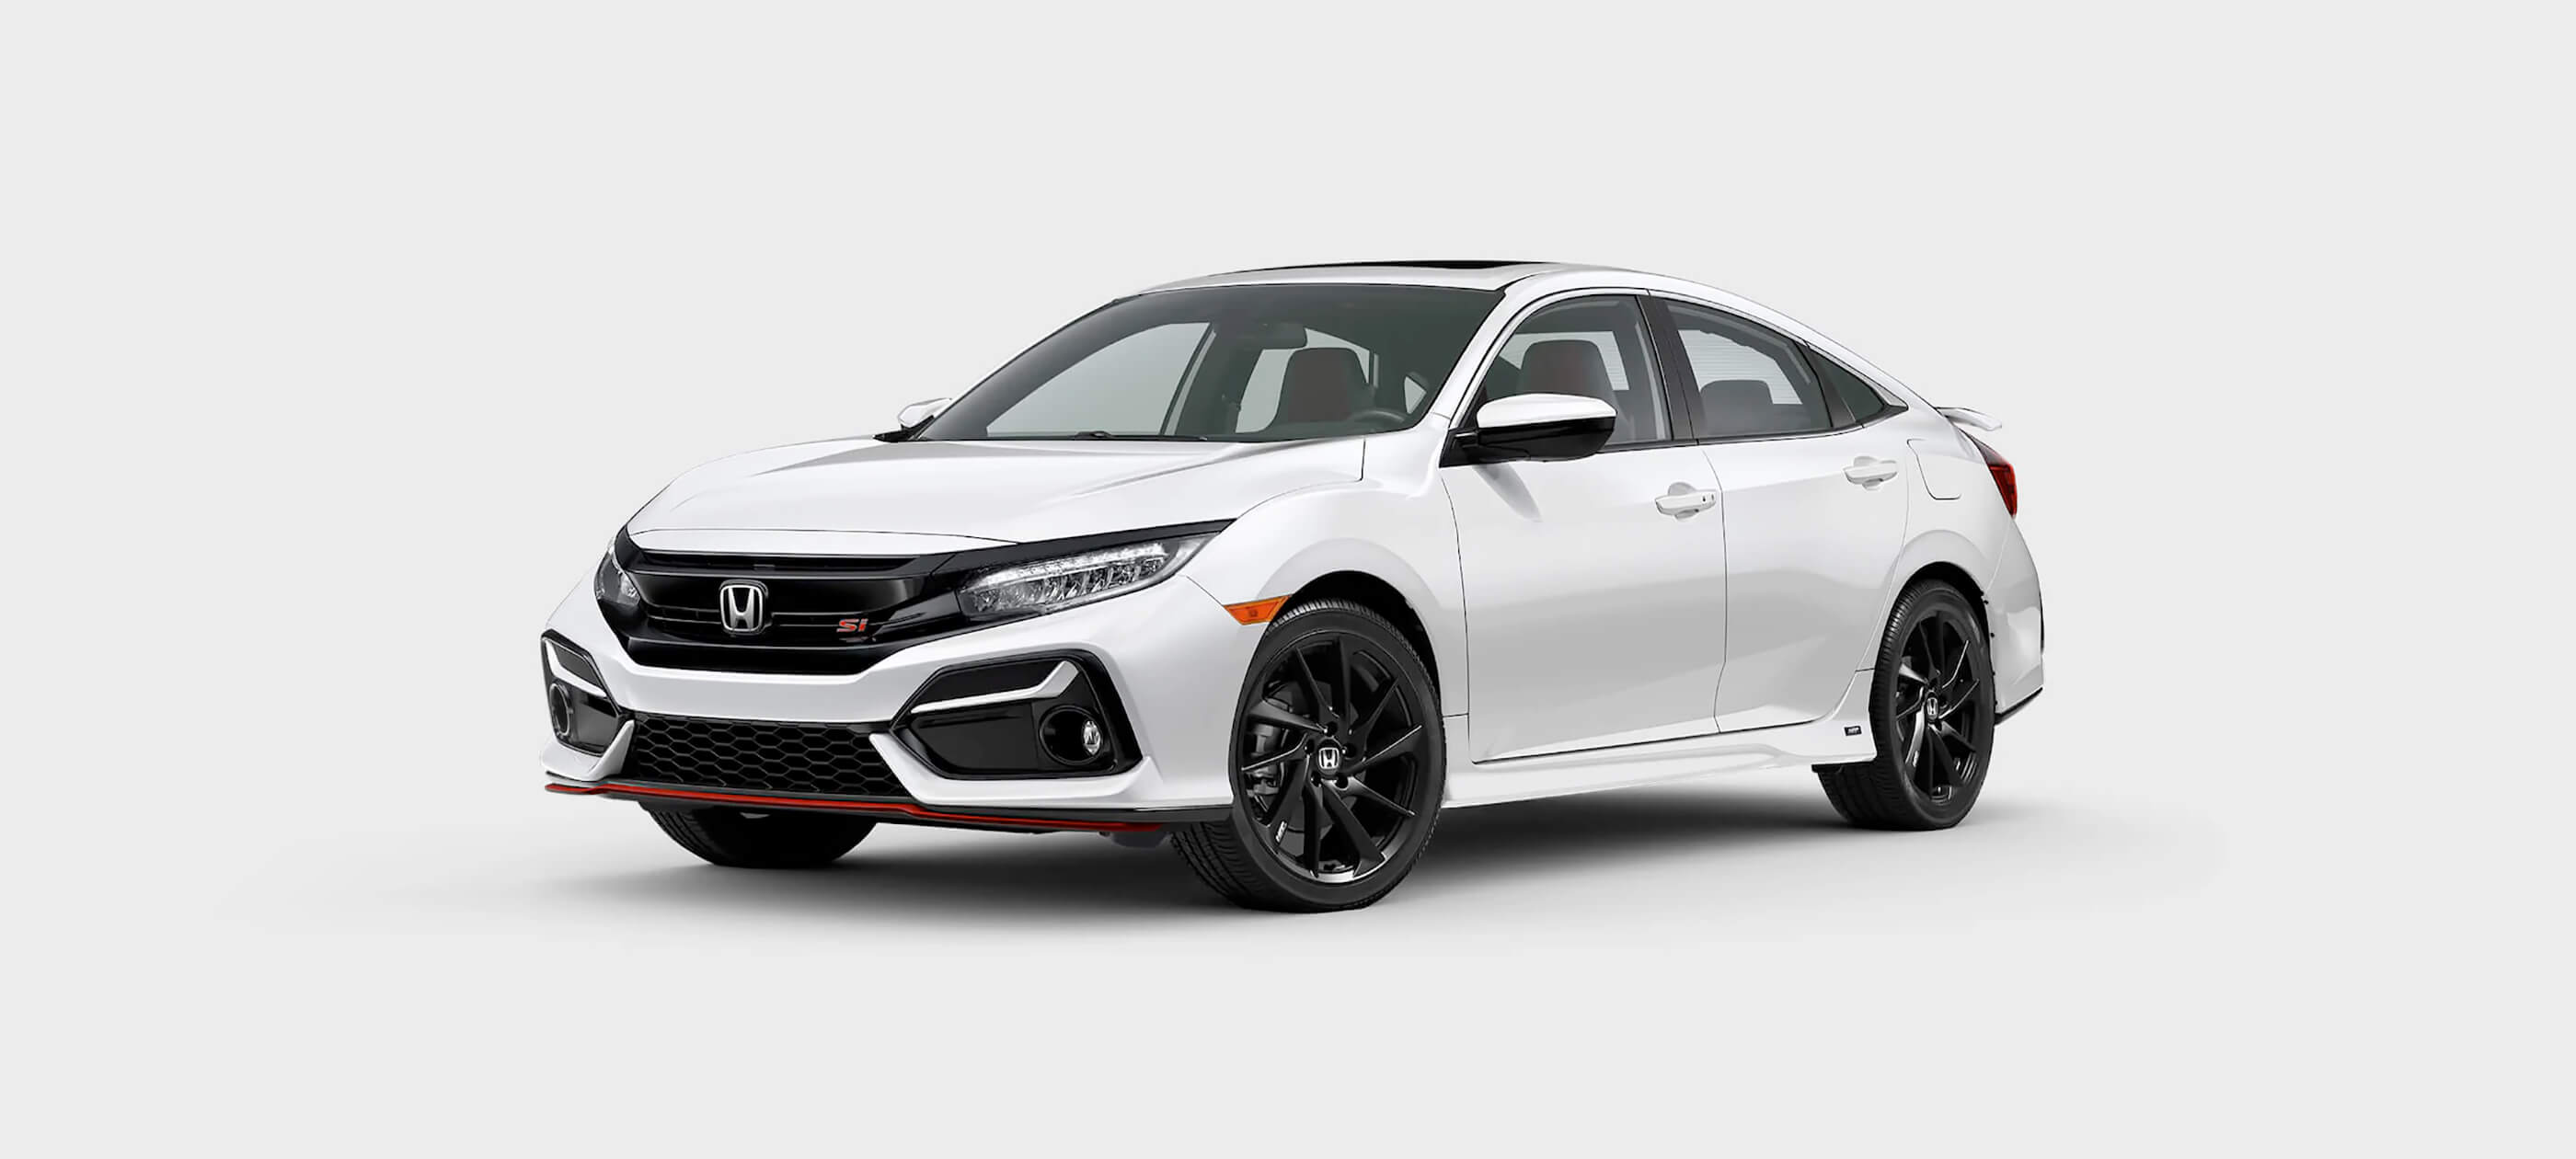 2020 Honda Civic Si Sedan Sport Compact Car Southern California Honda Dealers